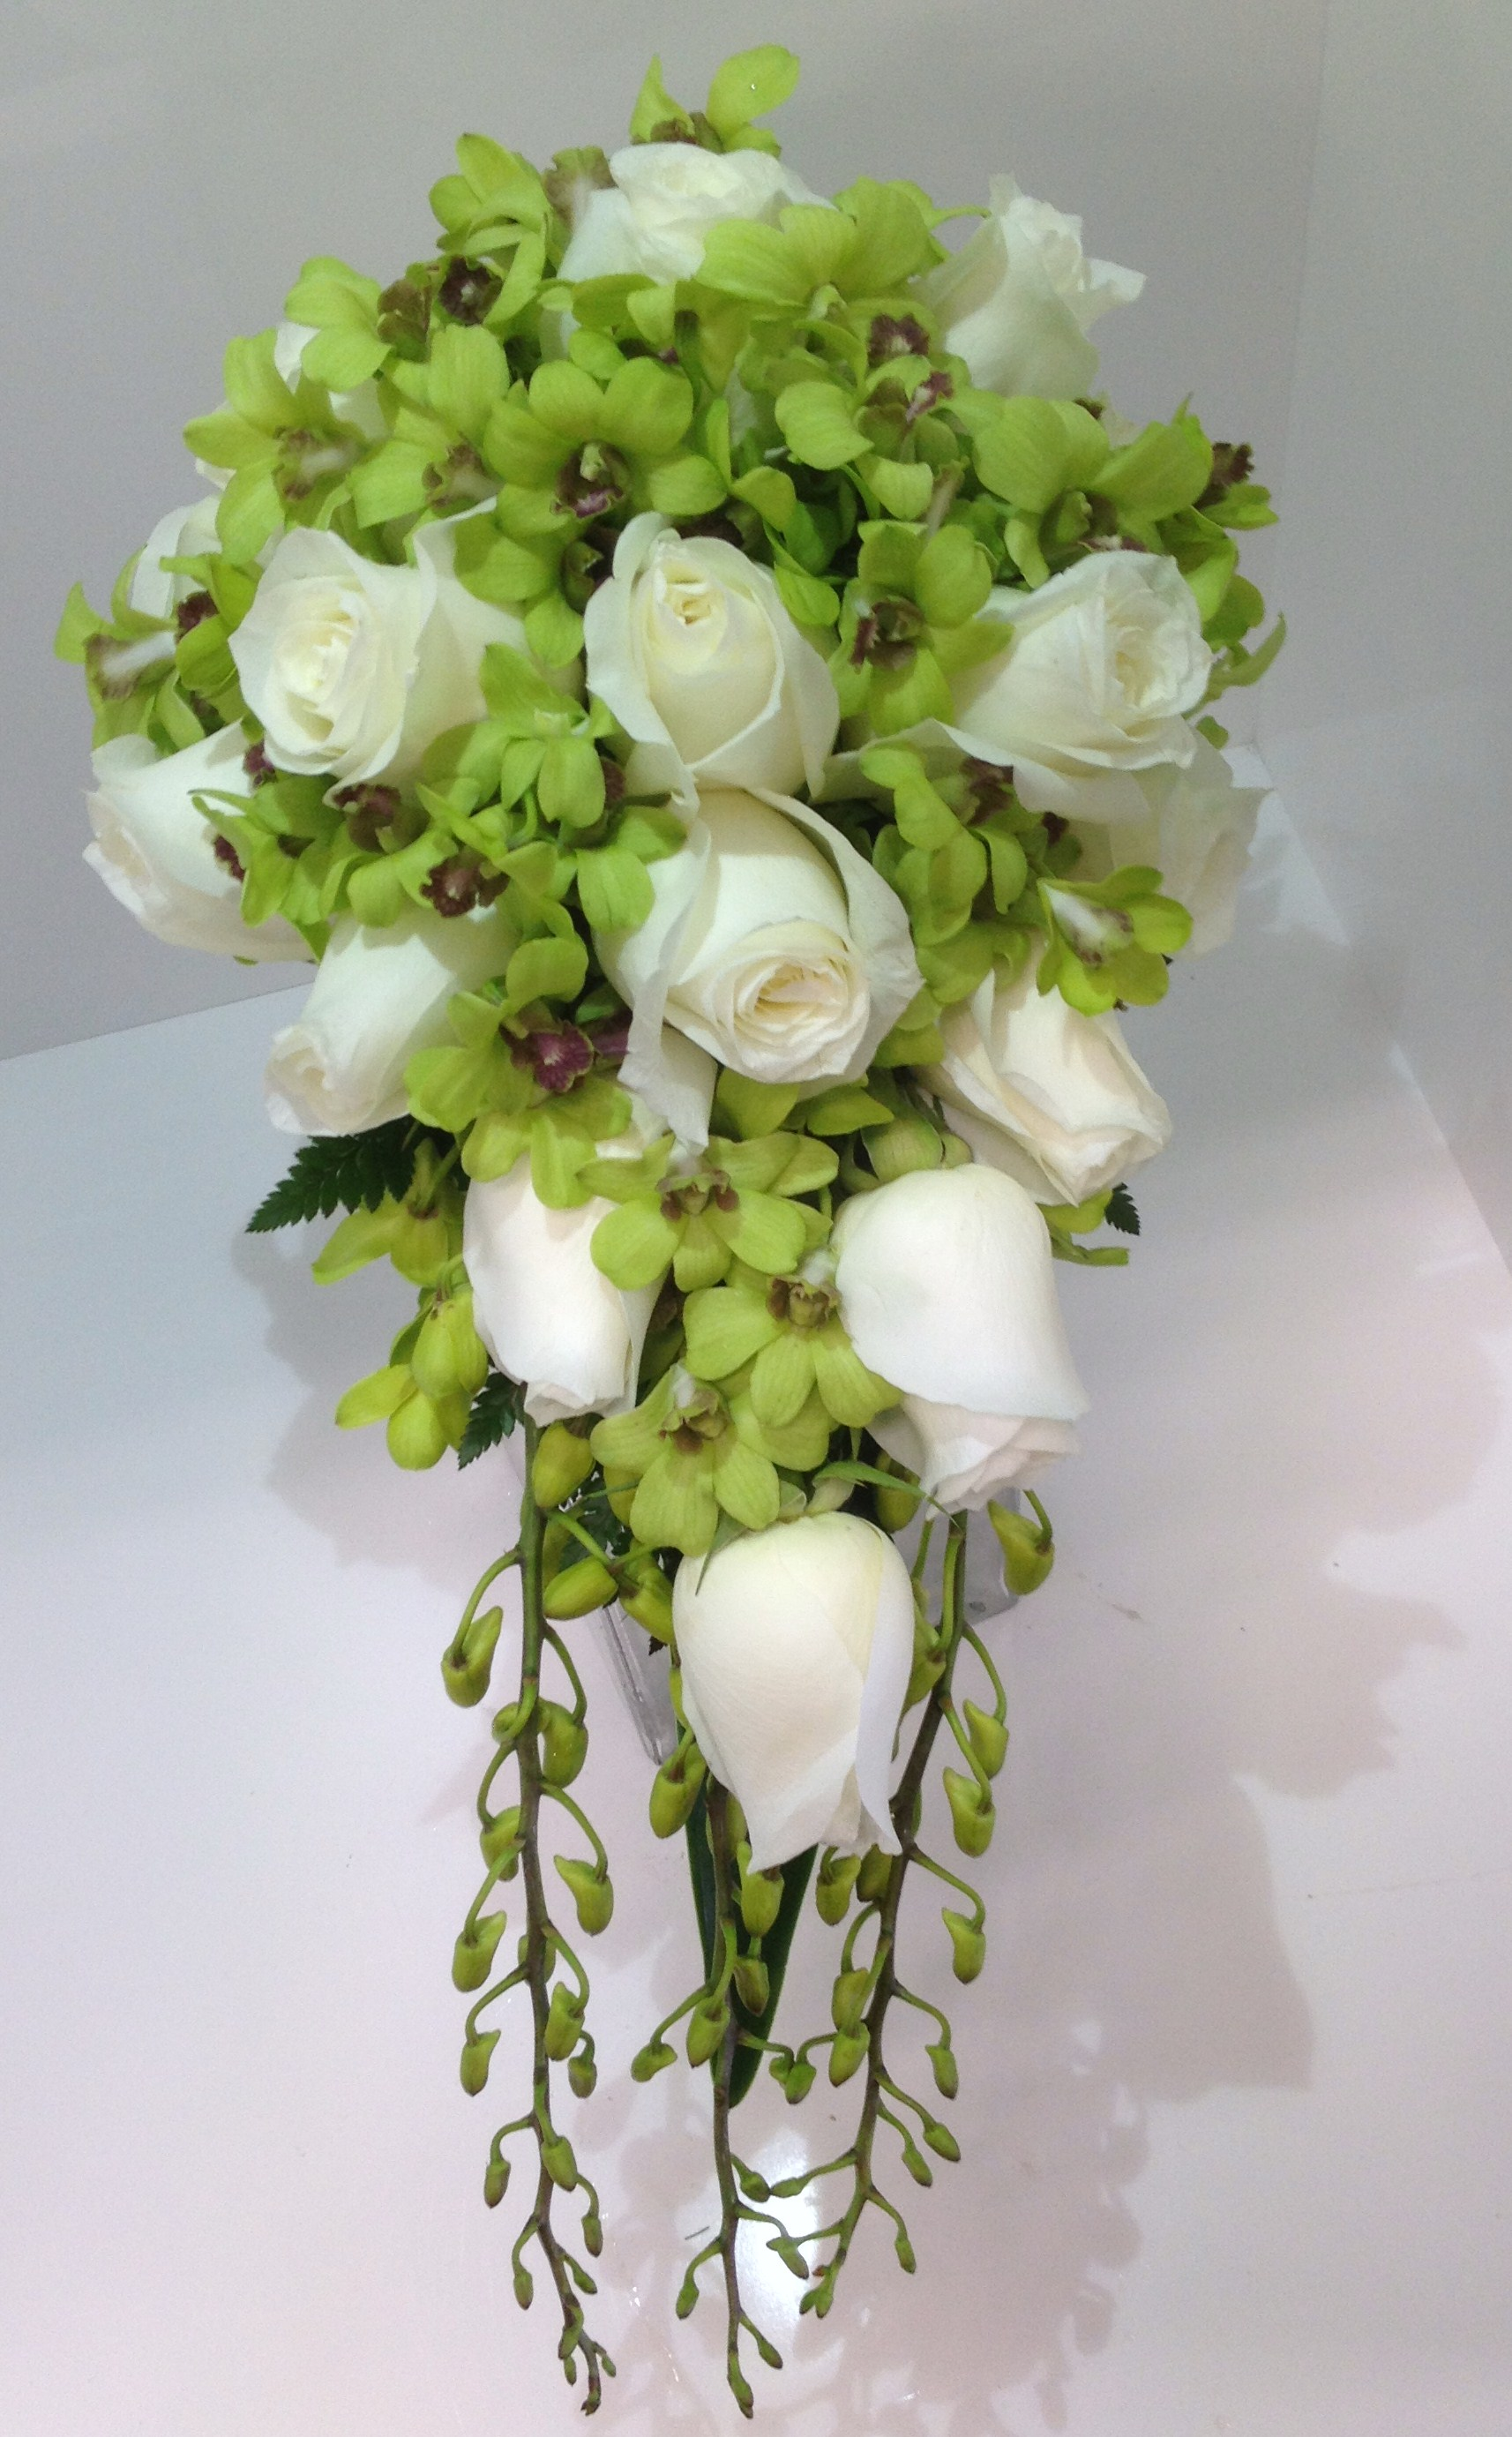 Green orchid white rose tear drop bouquet